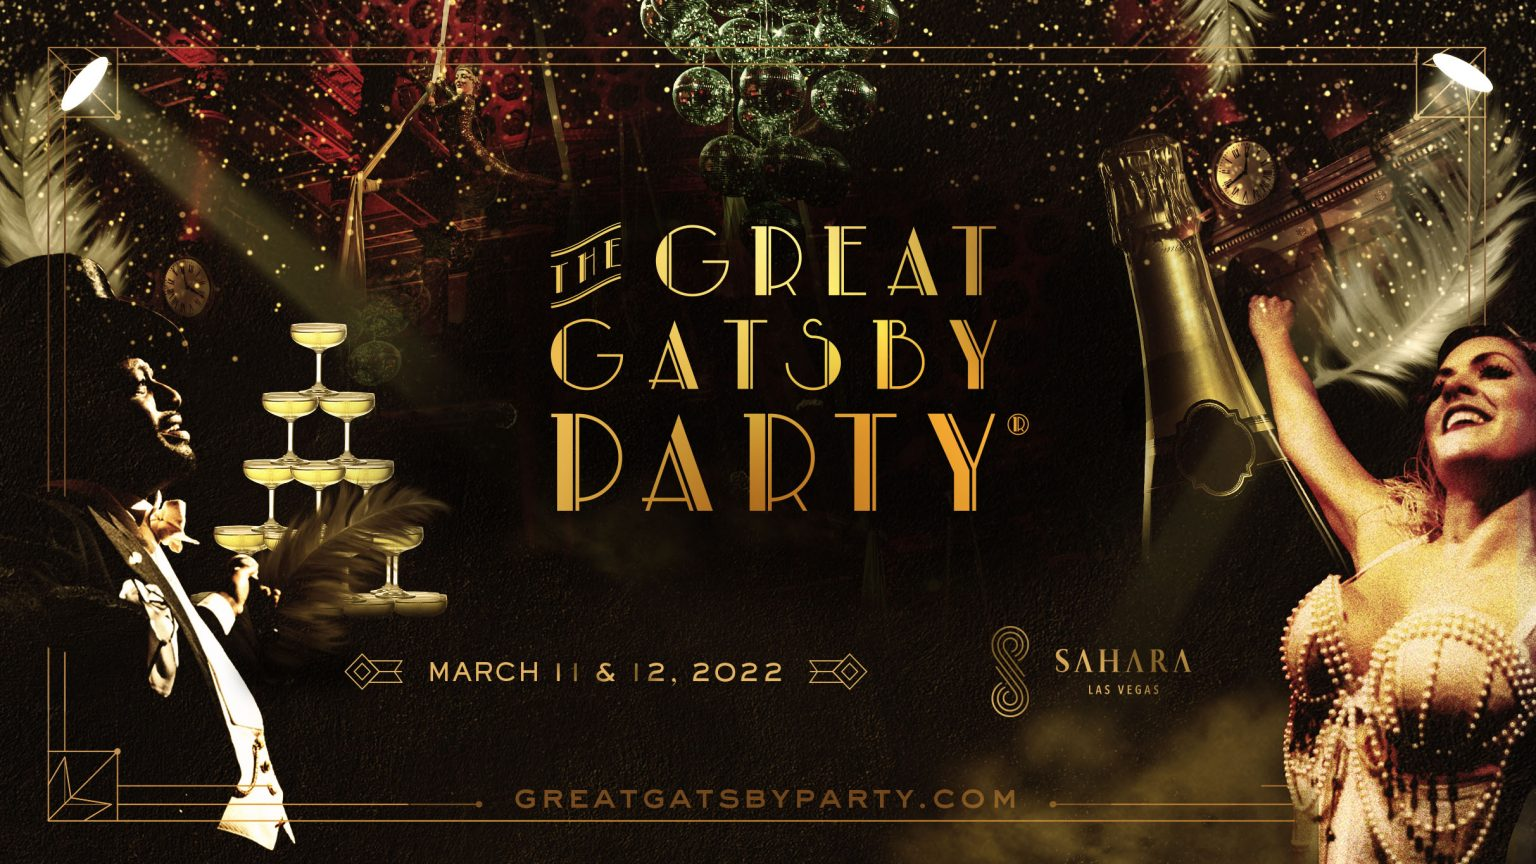 The Great Gatsby copy against a black background